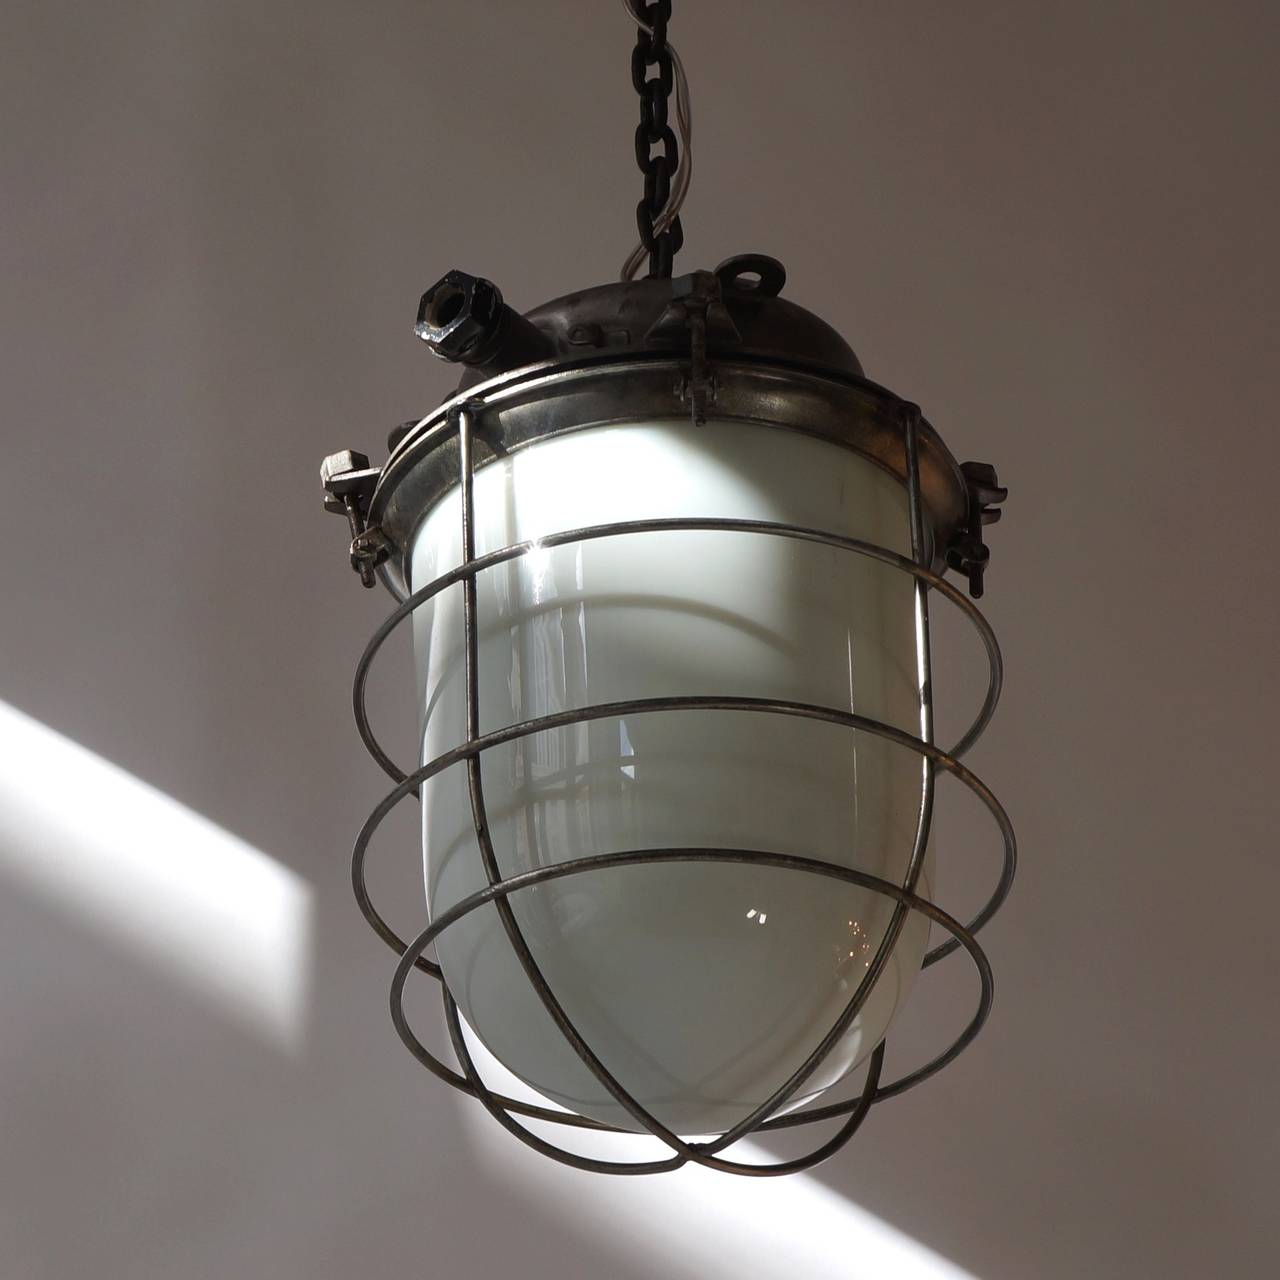 Four Vintage Industrial Hanging Lamps In Good Condition For Sale In Antwerp, BE